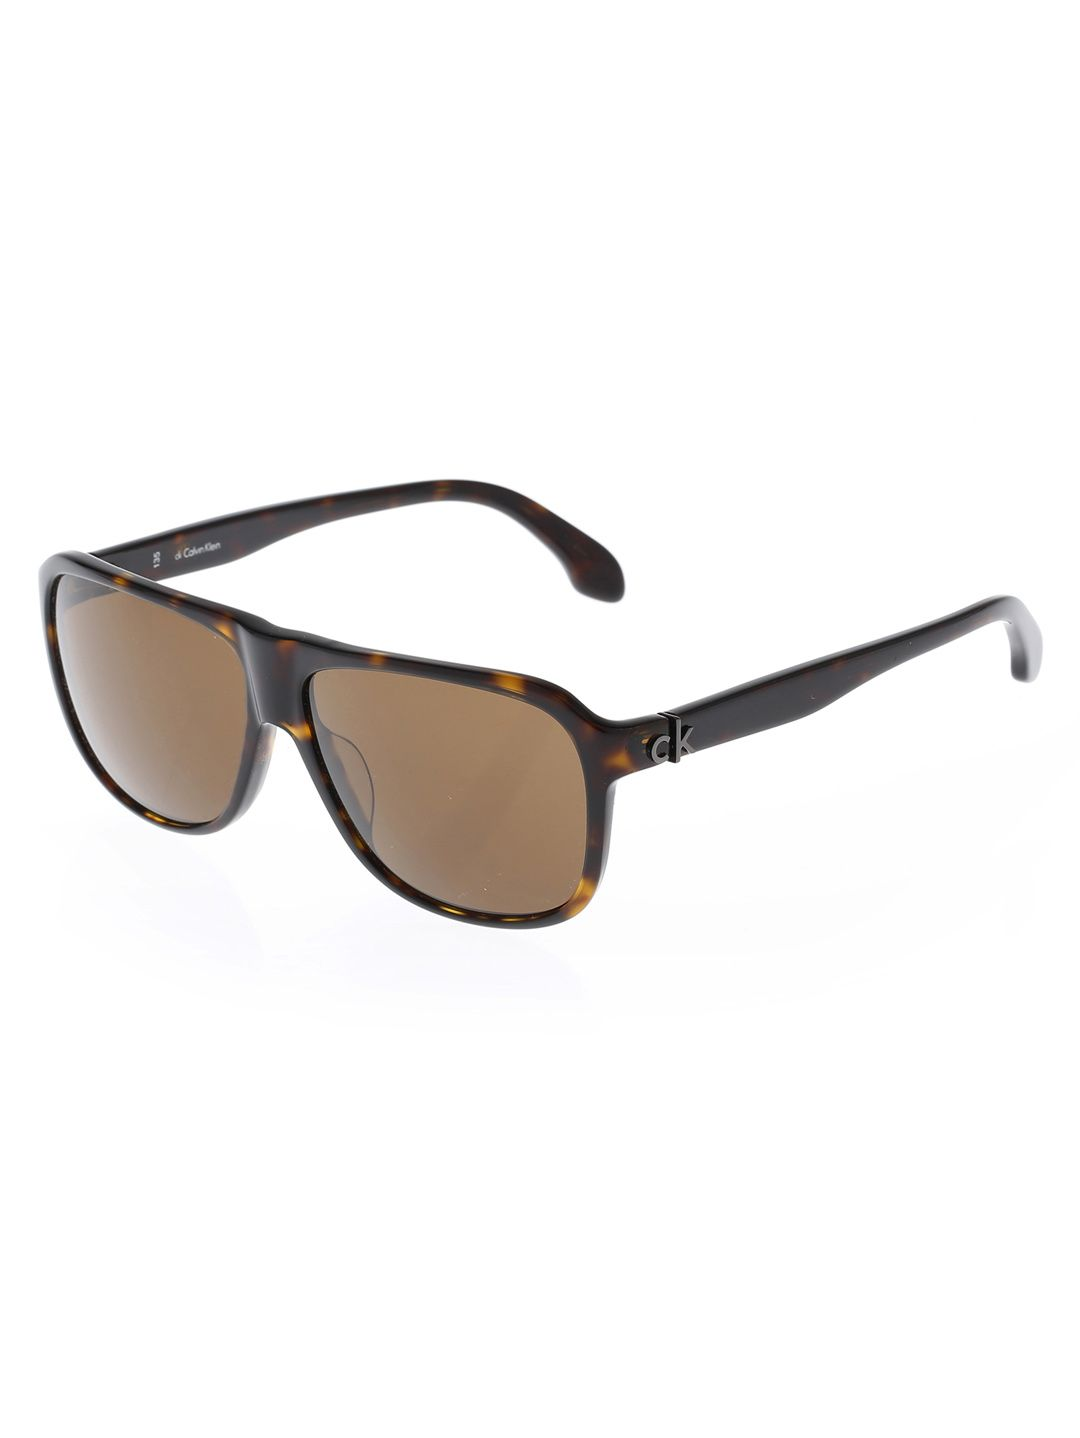 Have You Seen The Sets That We Have At Laborsaelite Com Big Discounts On Sunglasses At Laborsaelite Fast Fr Calvin Klein Glasses Sunglasses Online Sunglasses